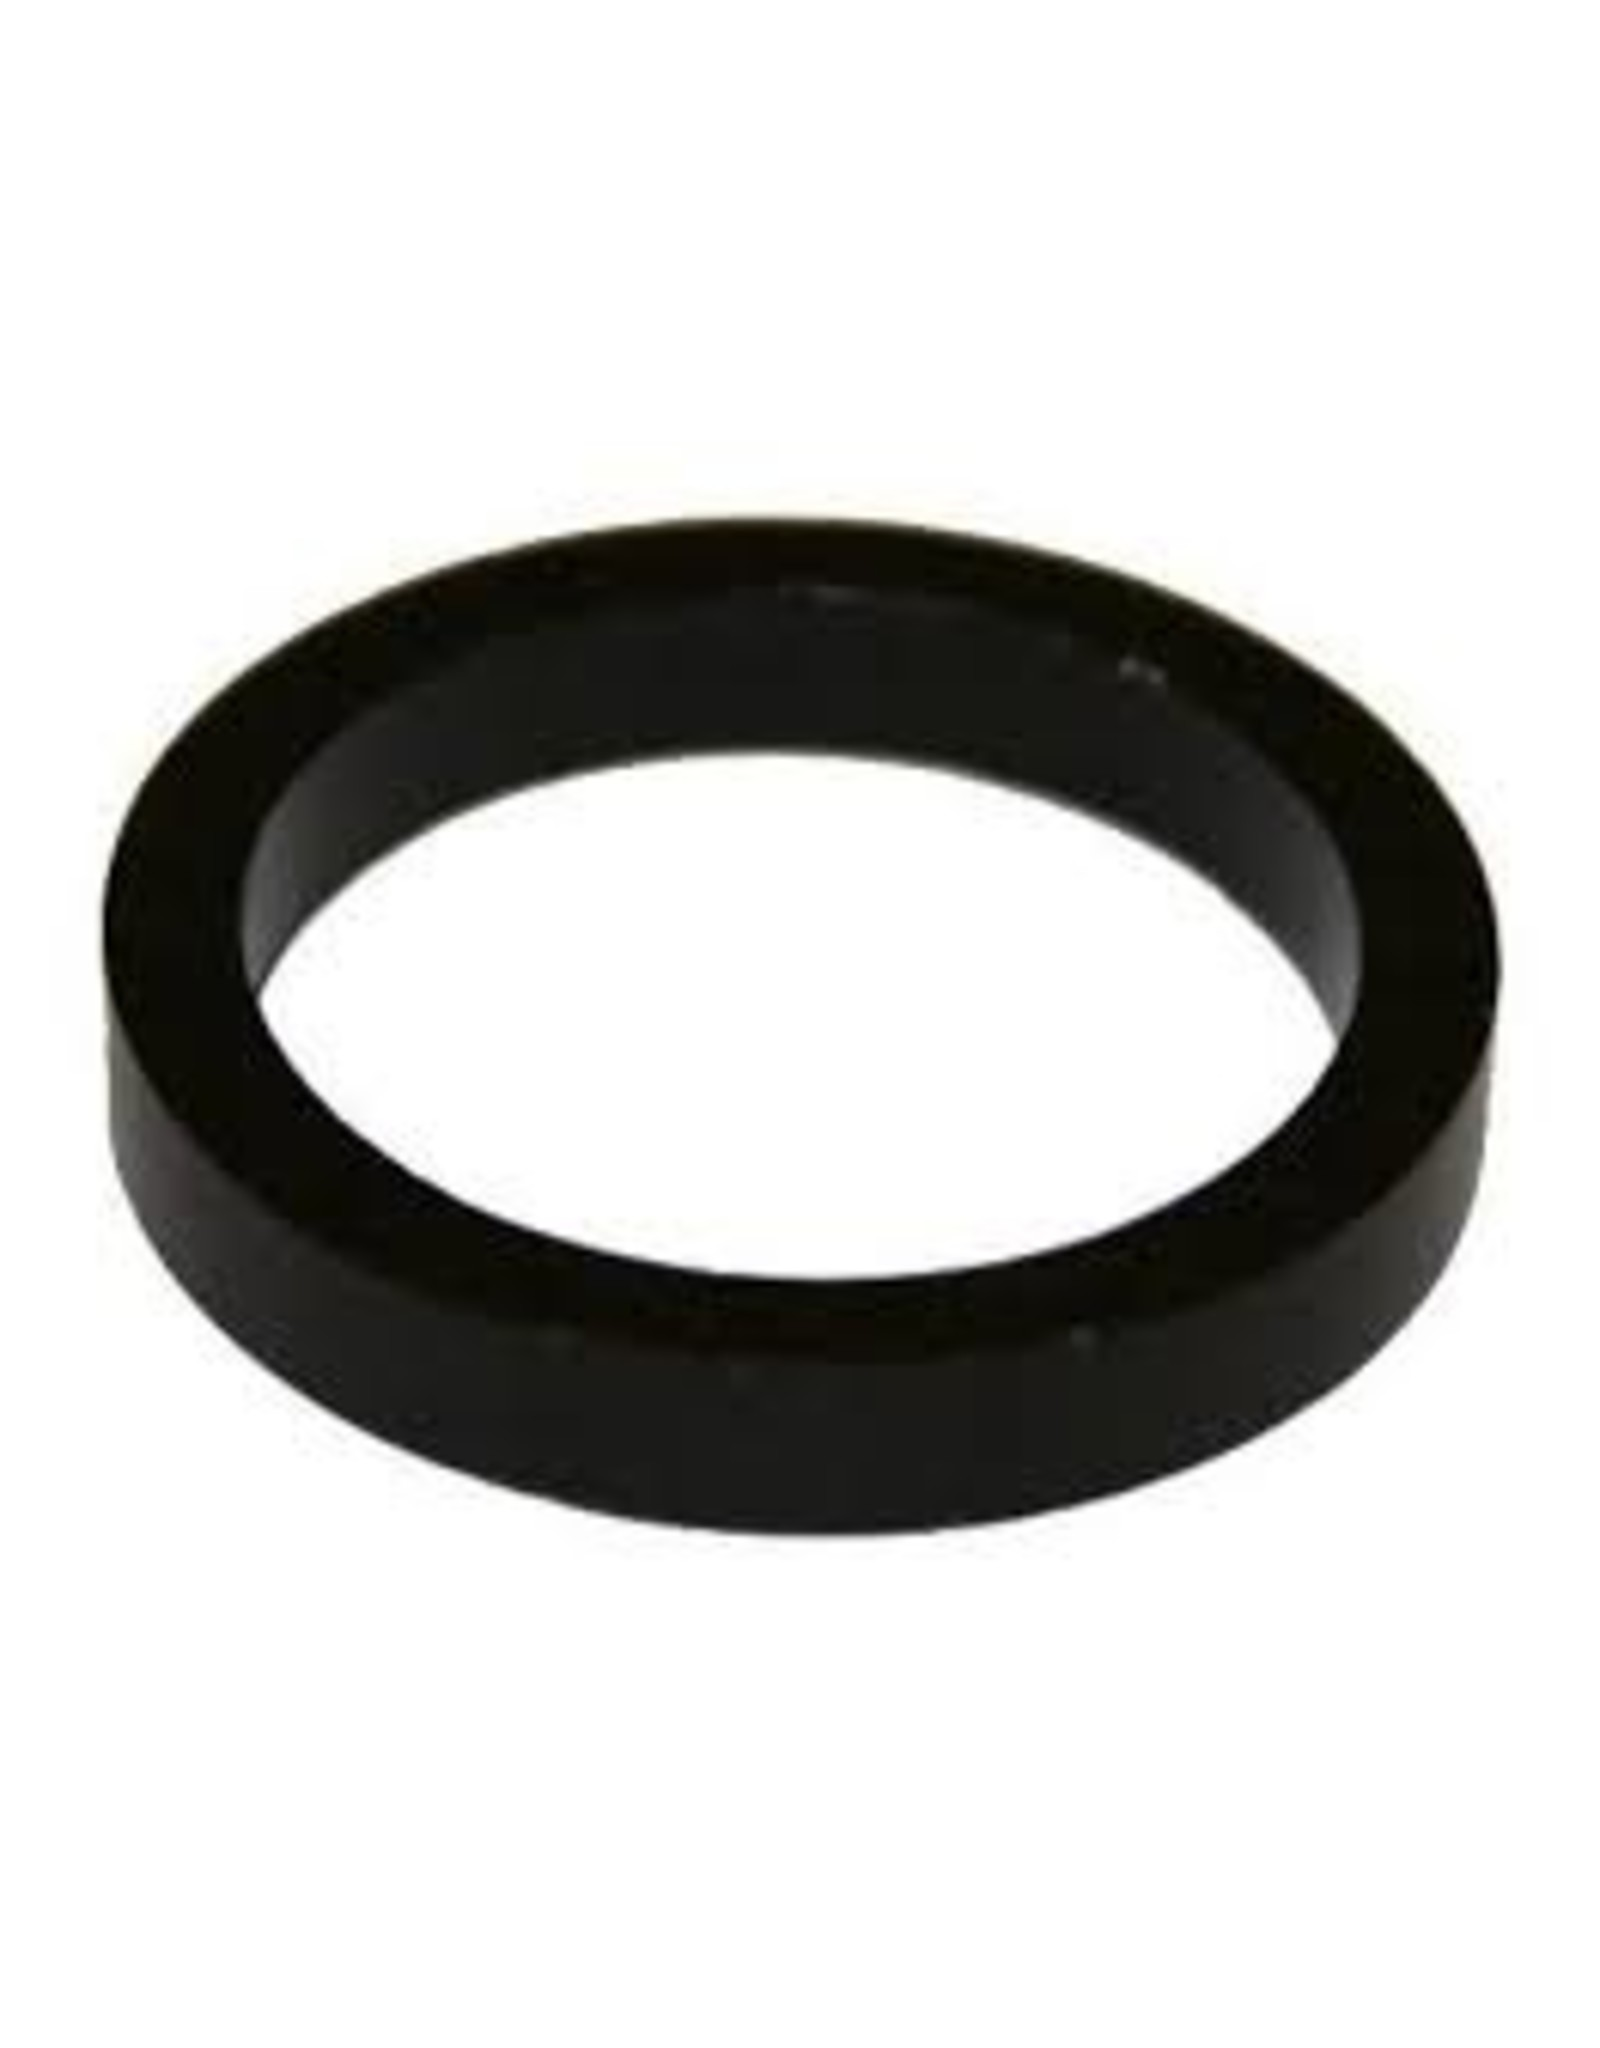 ECONO Non-Keyed Headset Spacers 28.6 x 3mm - Black